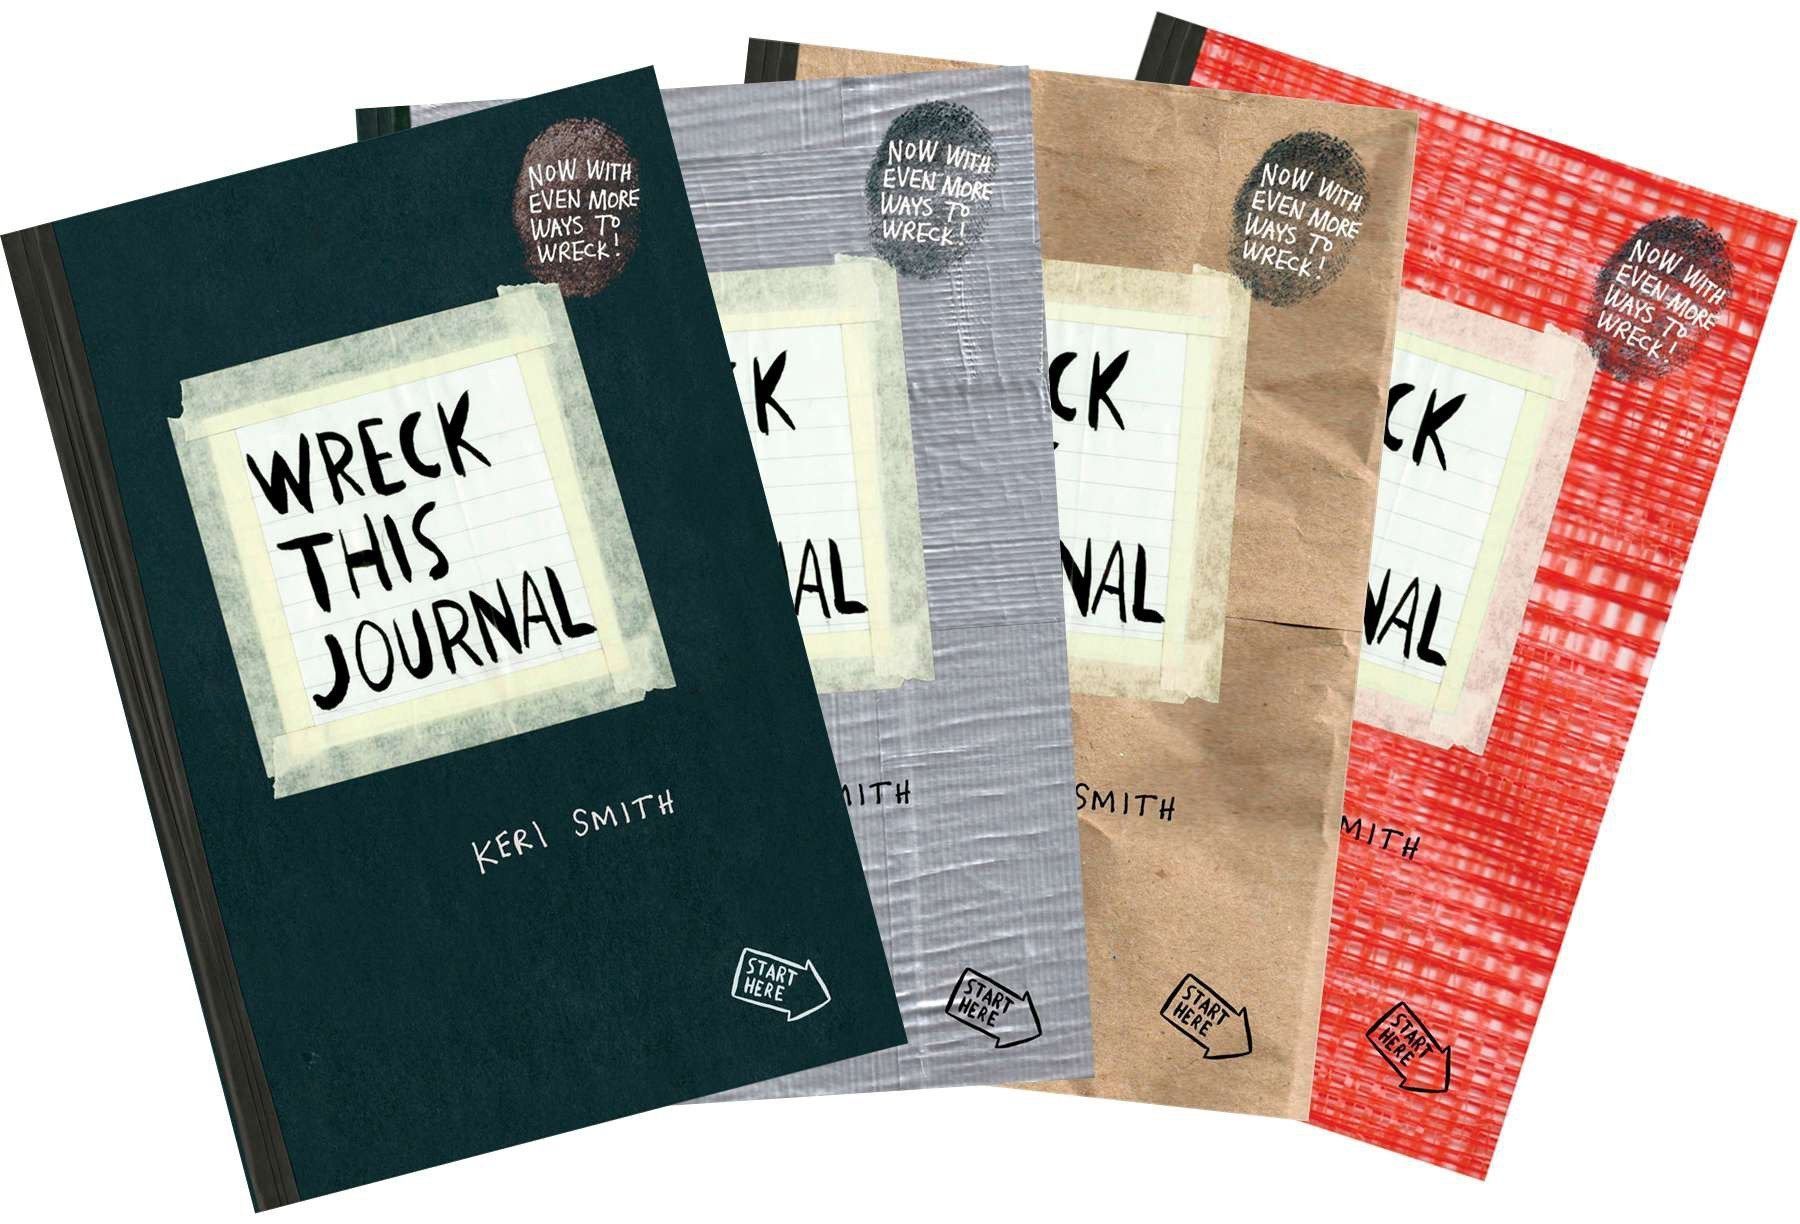 black Wreck This Journal Everywhere By Keri Smith 144 Pages English Original Book Wreck This Journal expanded Ed Free Shipping